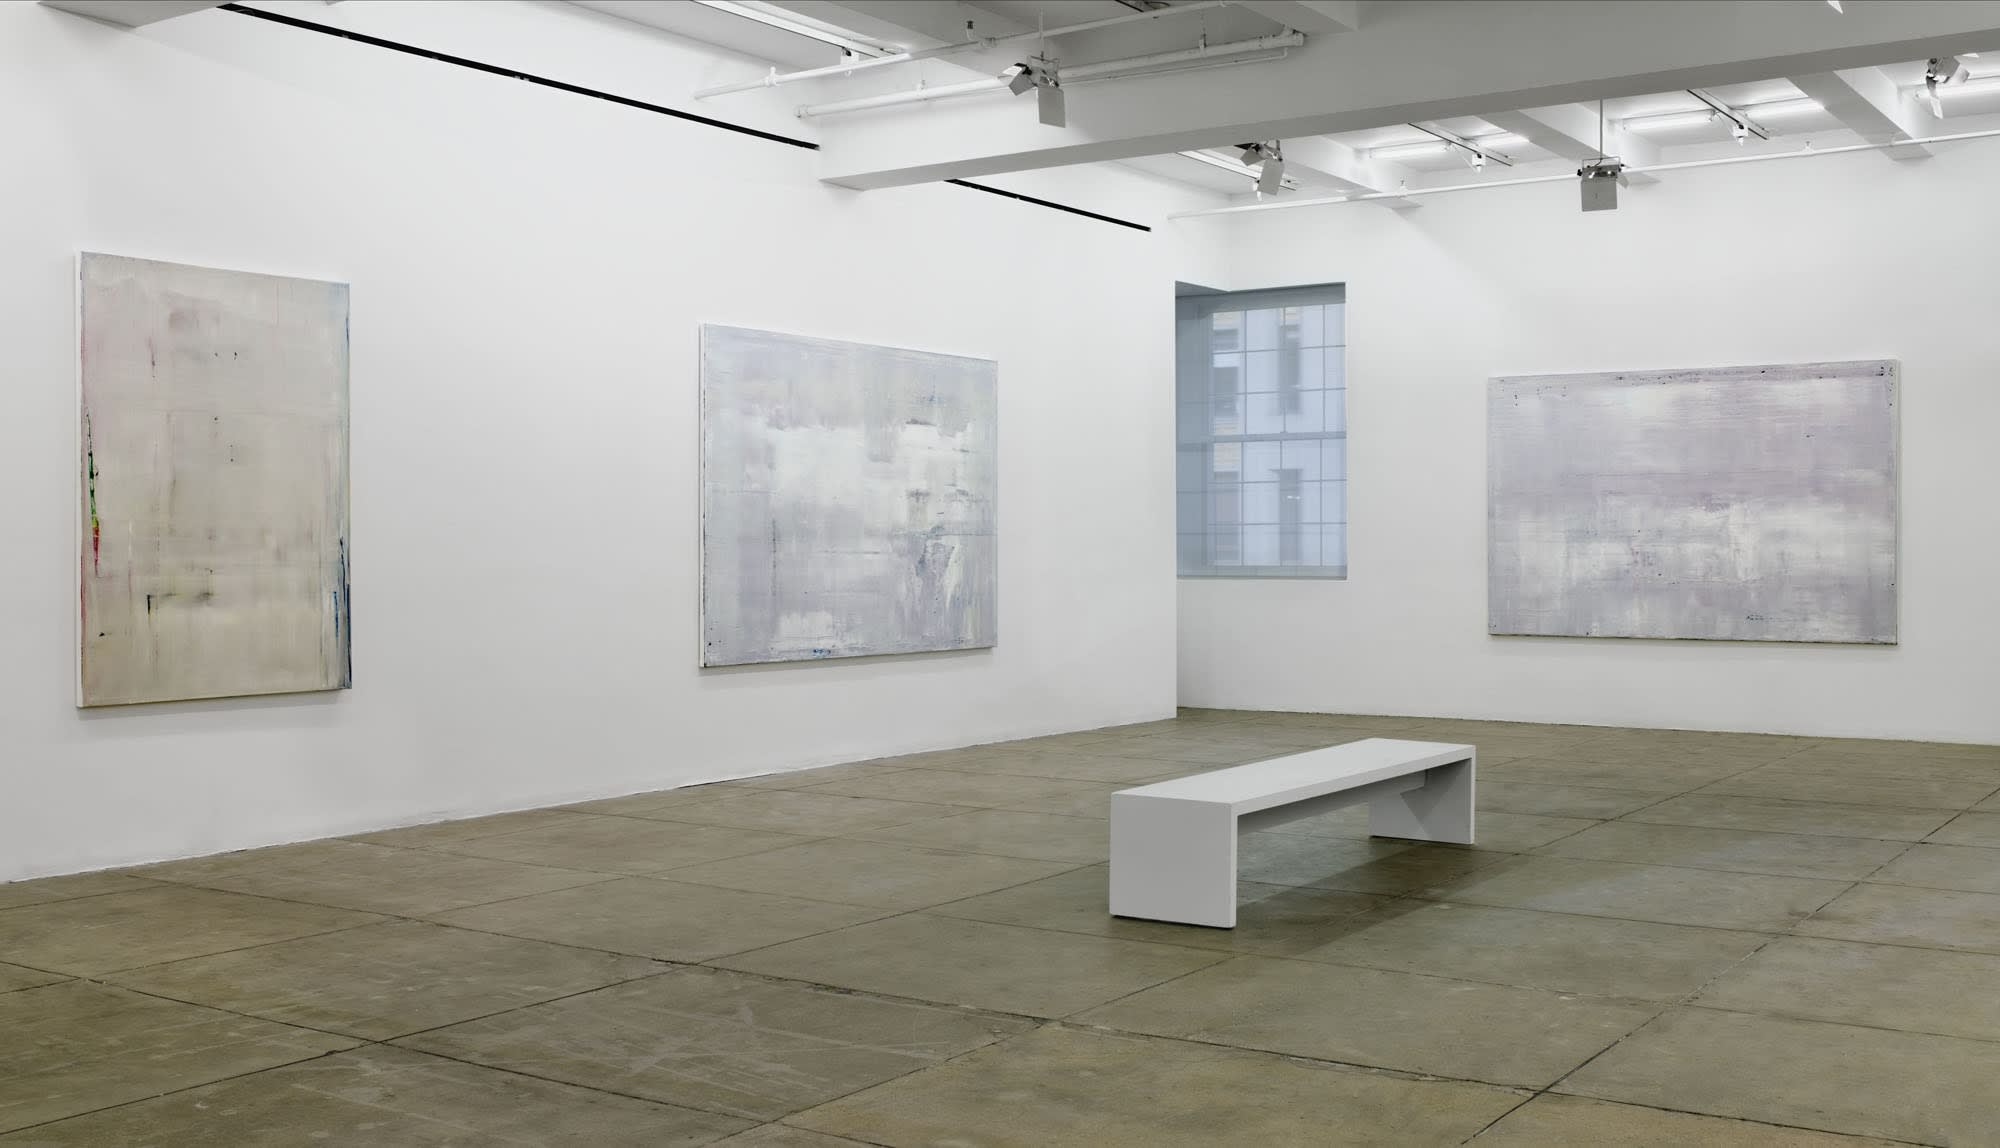 3 large, light grey, abstract paintings hang in the corner of a room. There is a window in the corner and a white bench in the center of the floor.